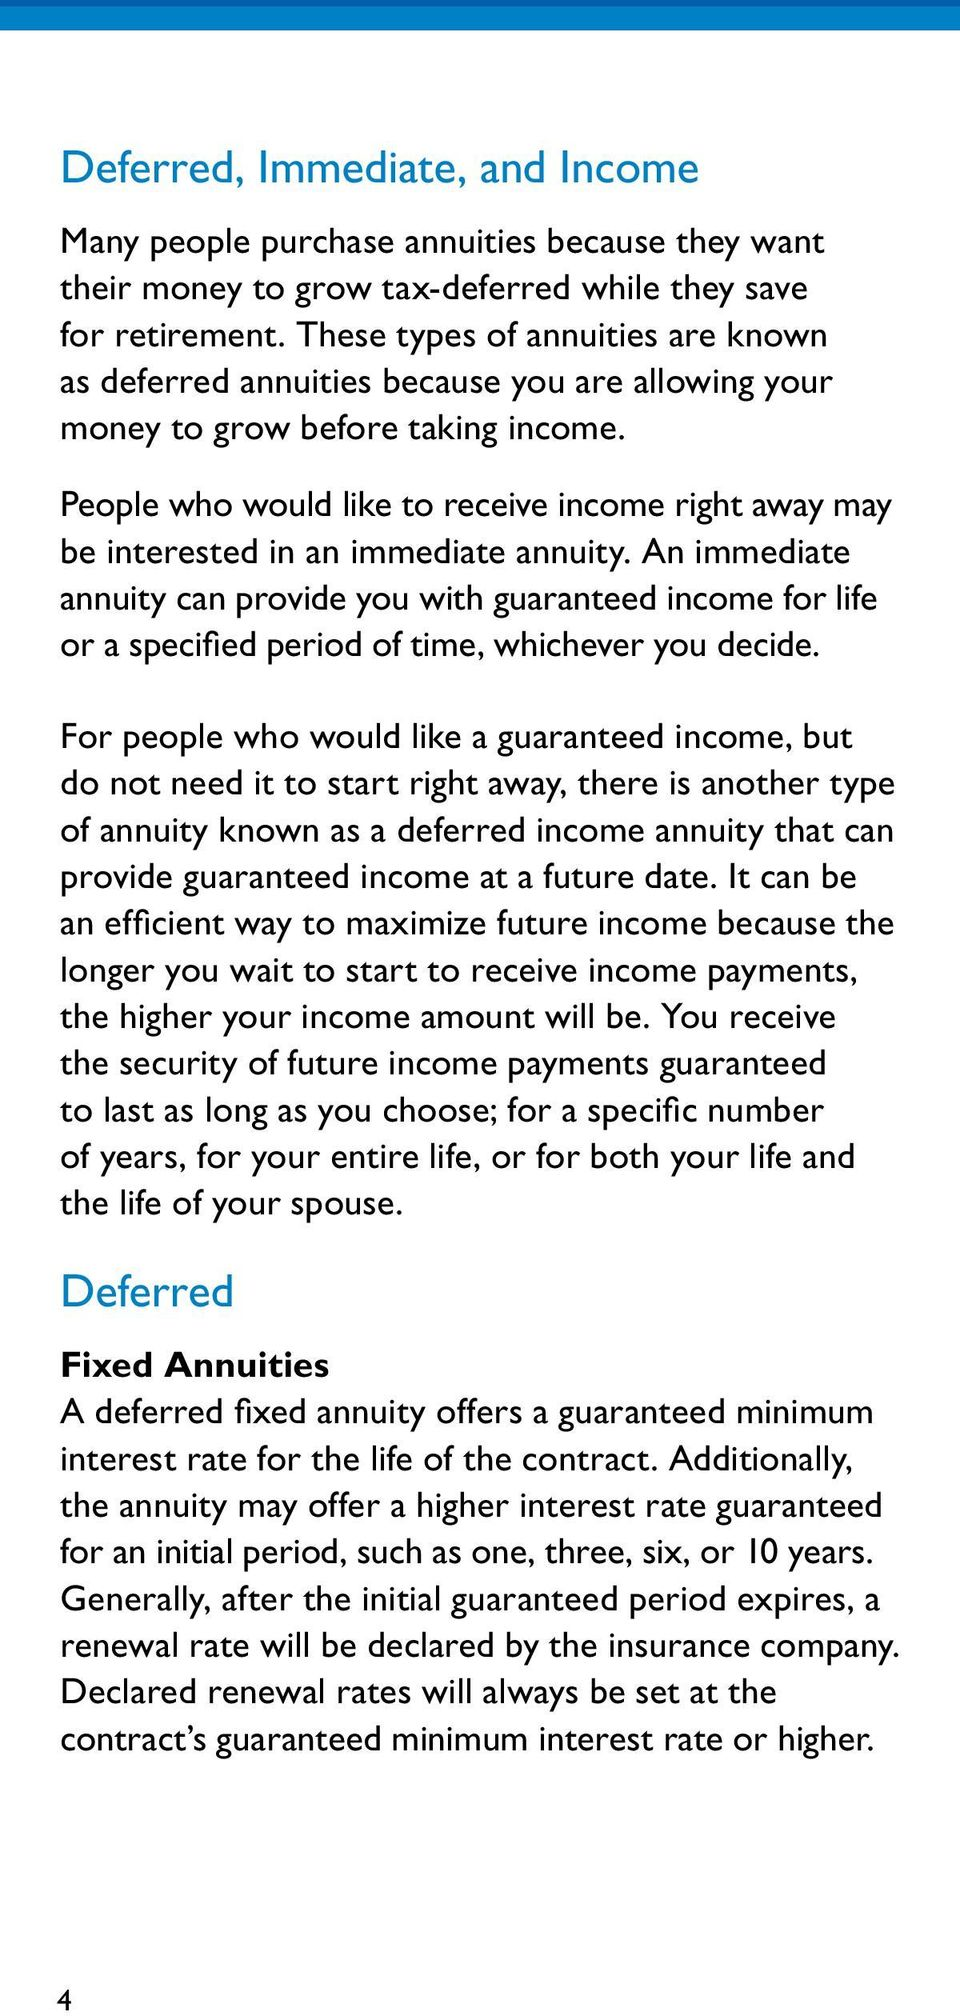 People who would like to receive income right away may be interested in an immediate annuity.